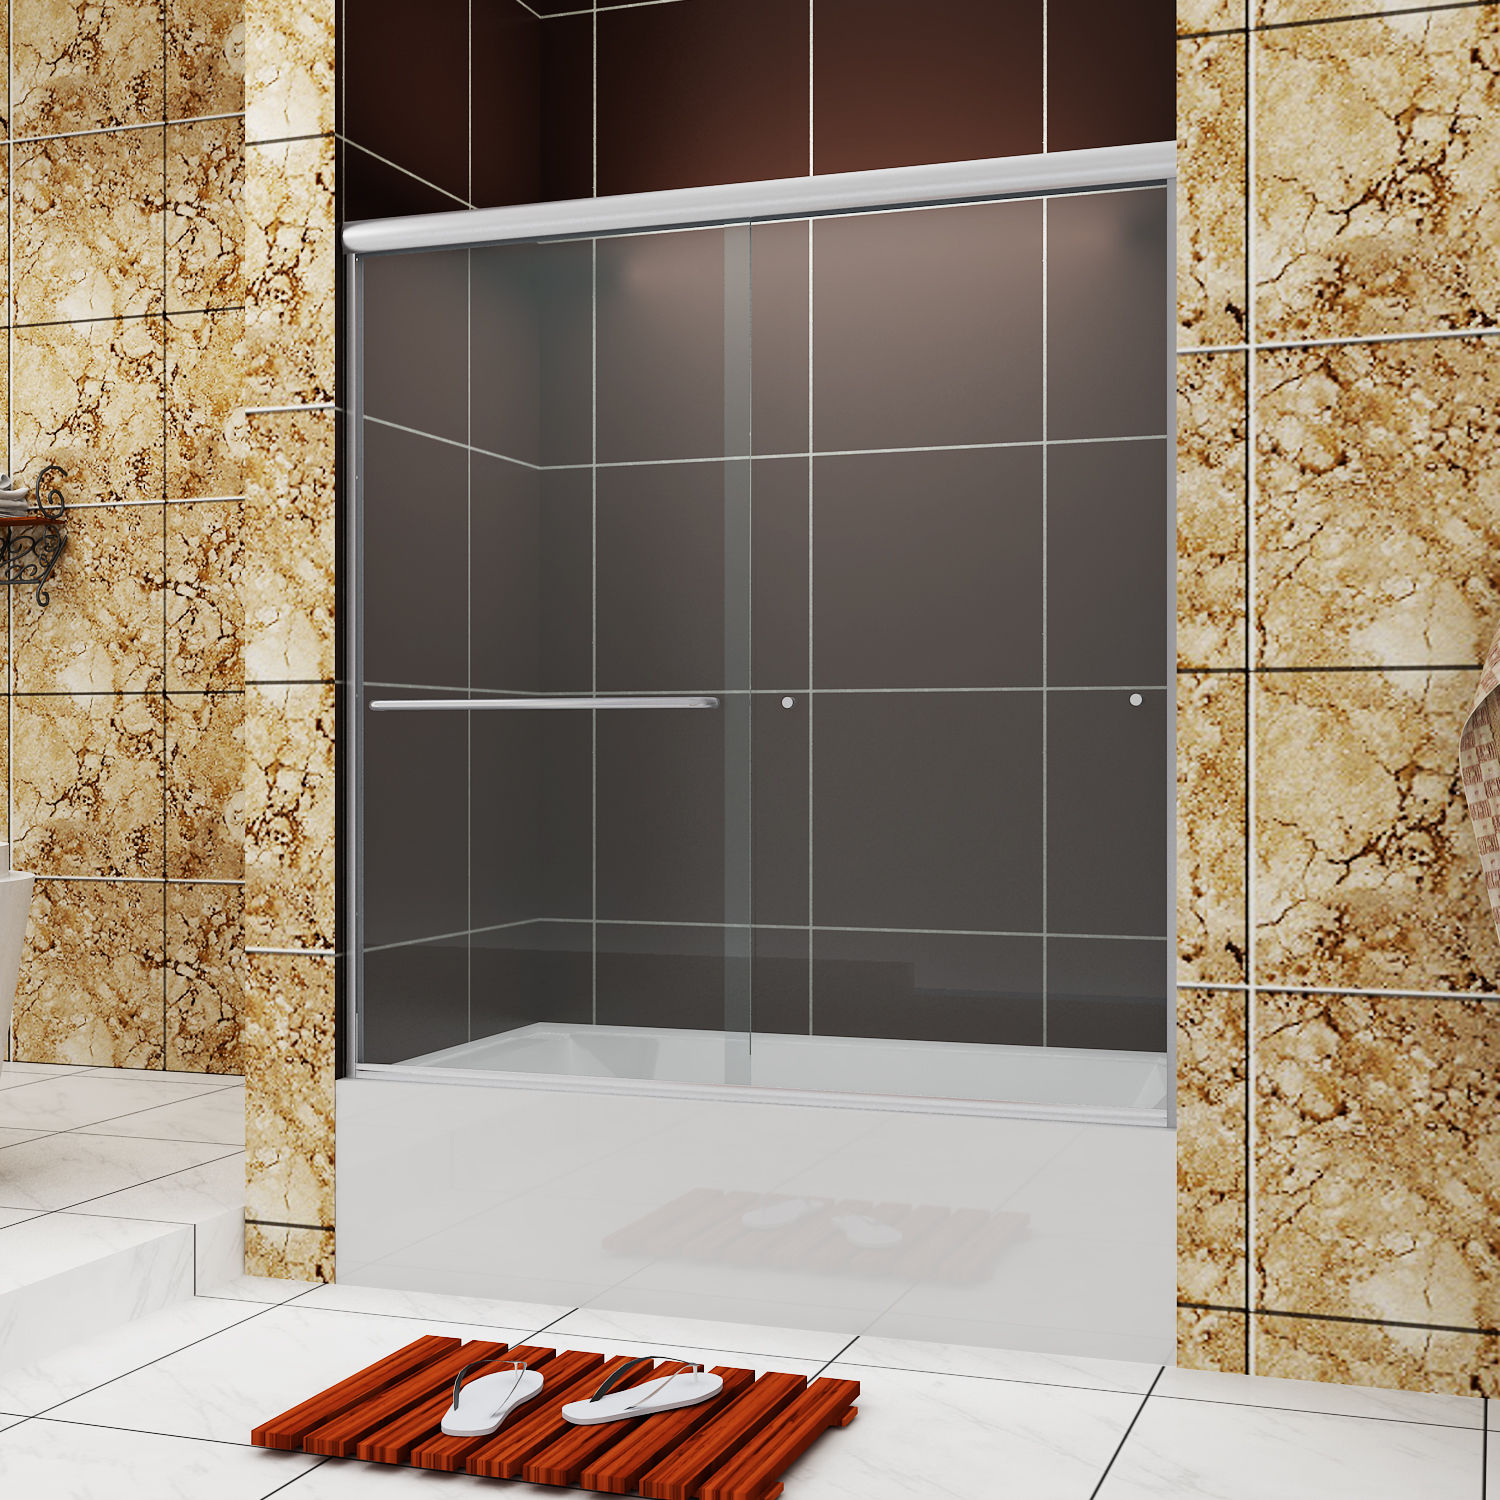 Details About Sunny Shower Semi Frameless Sliding Bypass Bathtub Doors 60 W Brushed Nickel